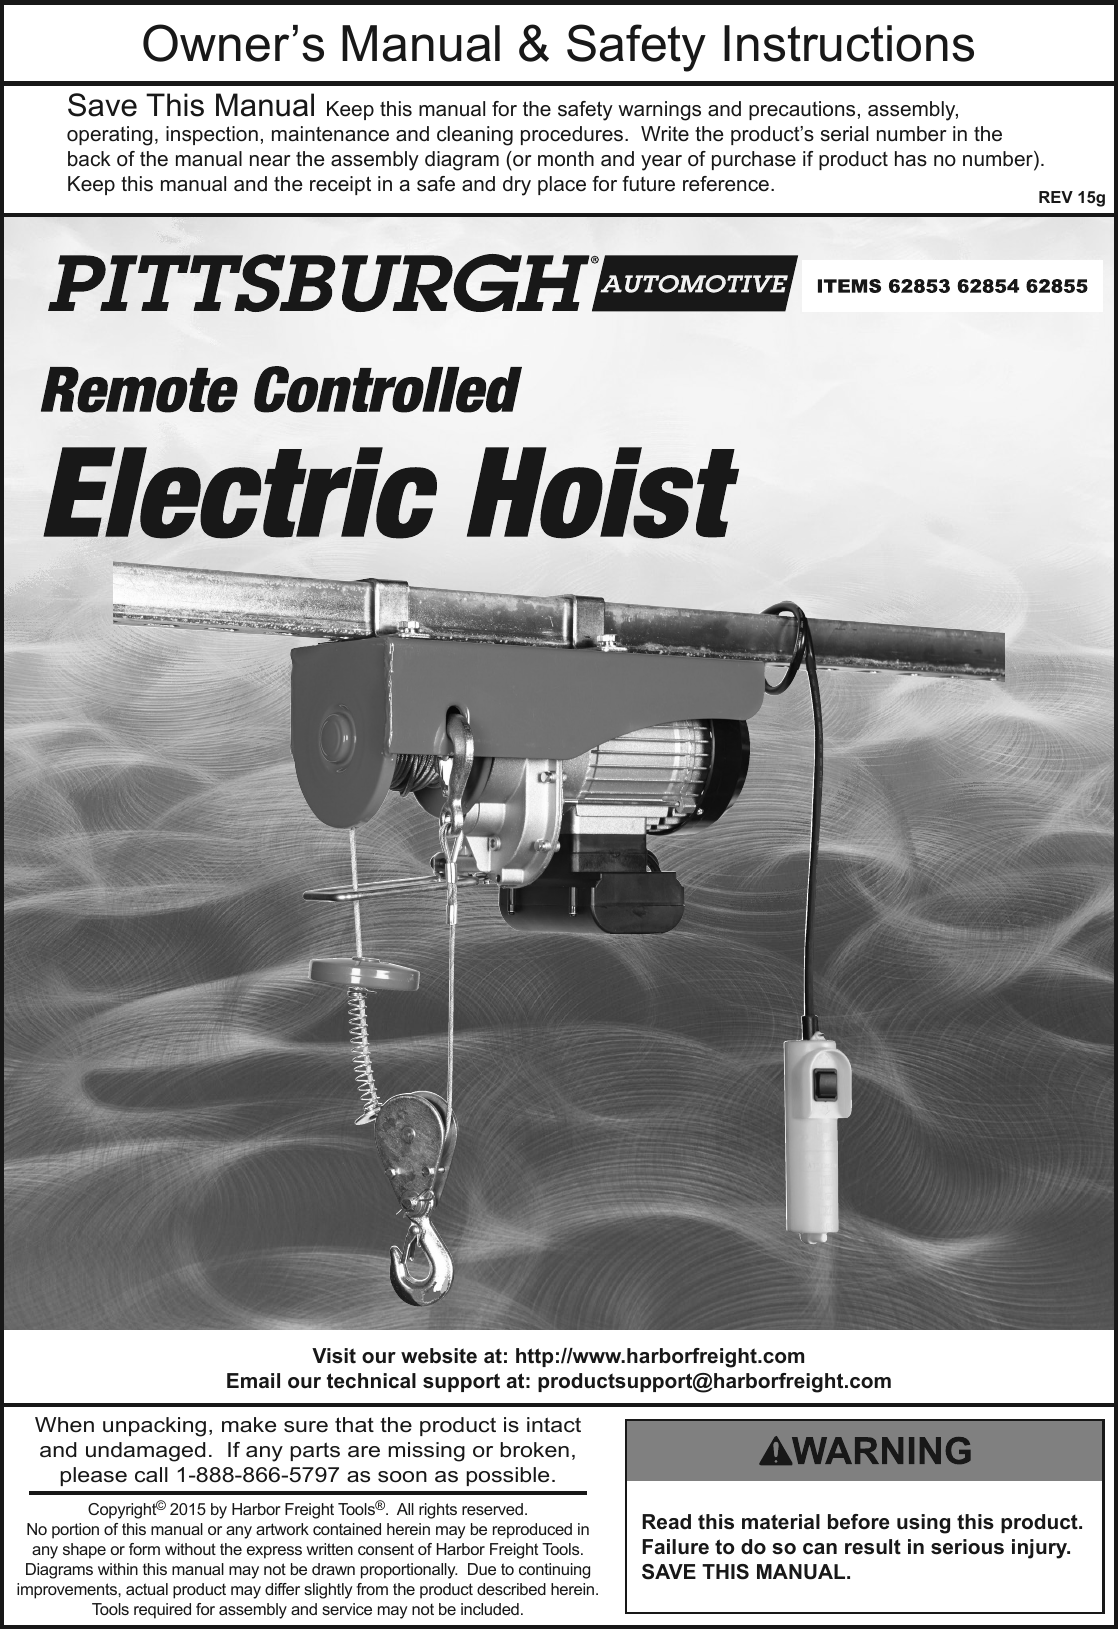 Manual For The 62854 880 Lb. Electric Hoist With Remote Control on